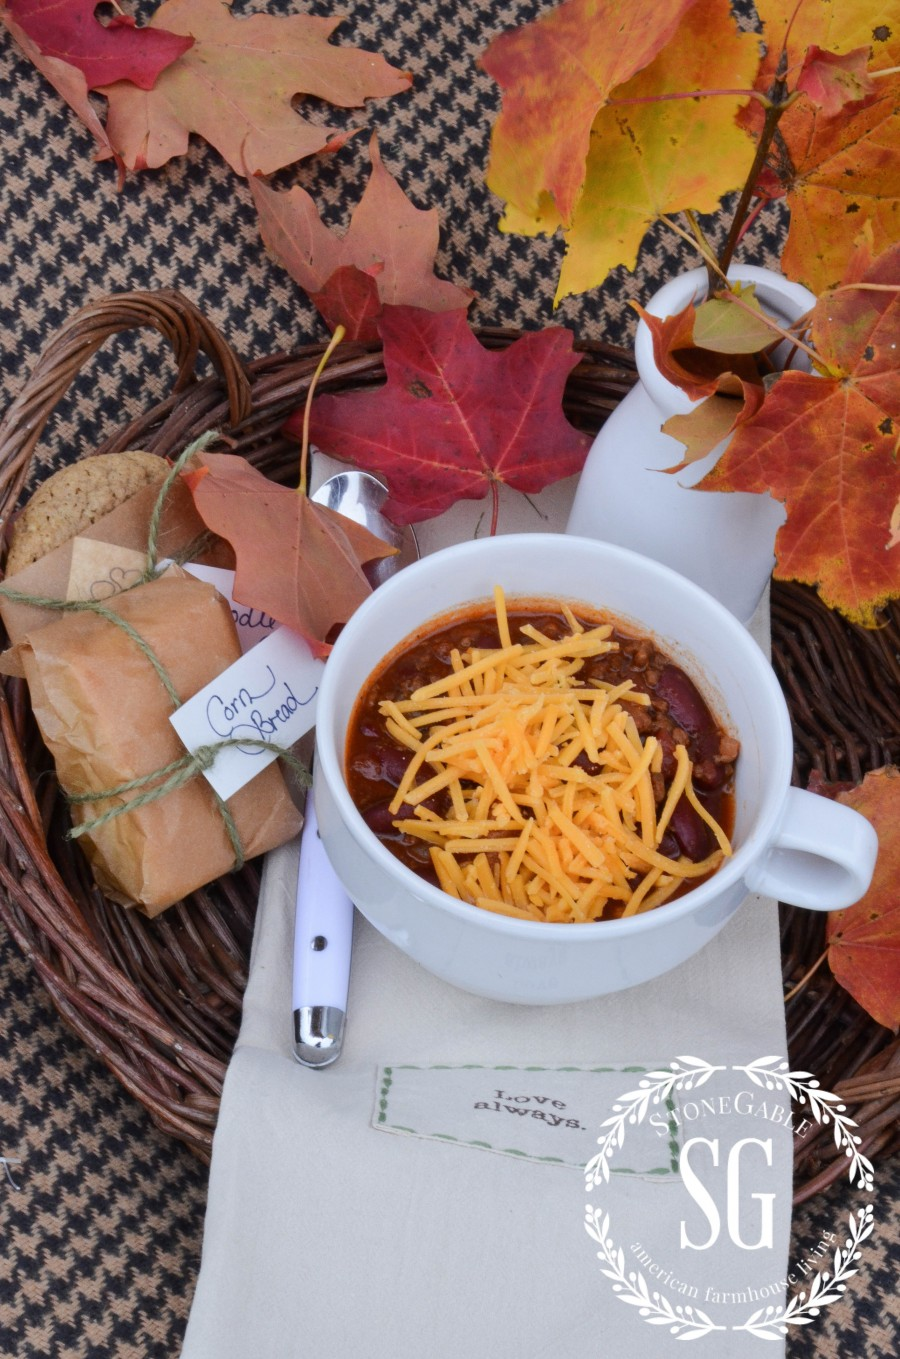 AUTUMN PICNIC in the leaves. Brilliant color and good food are a great mix for a Autumn picnic